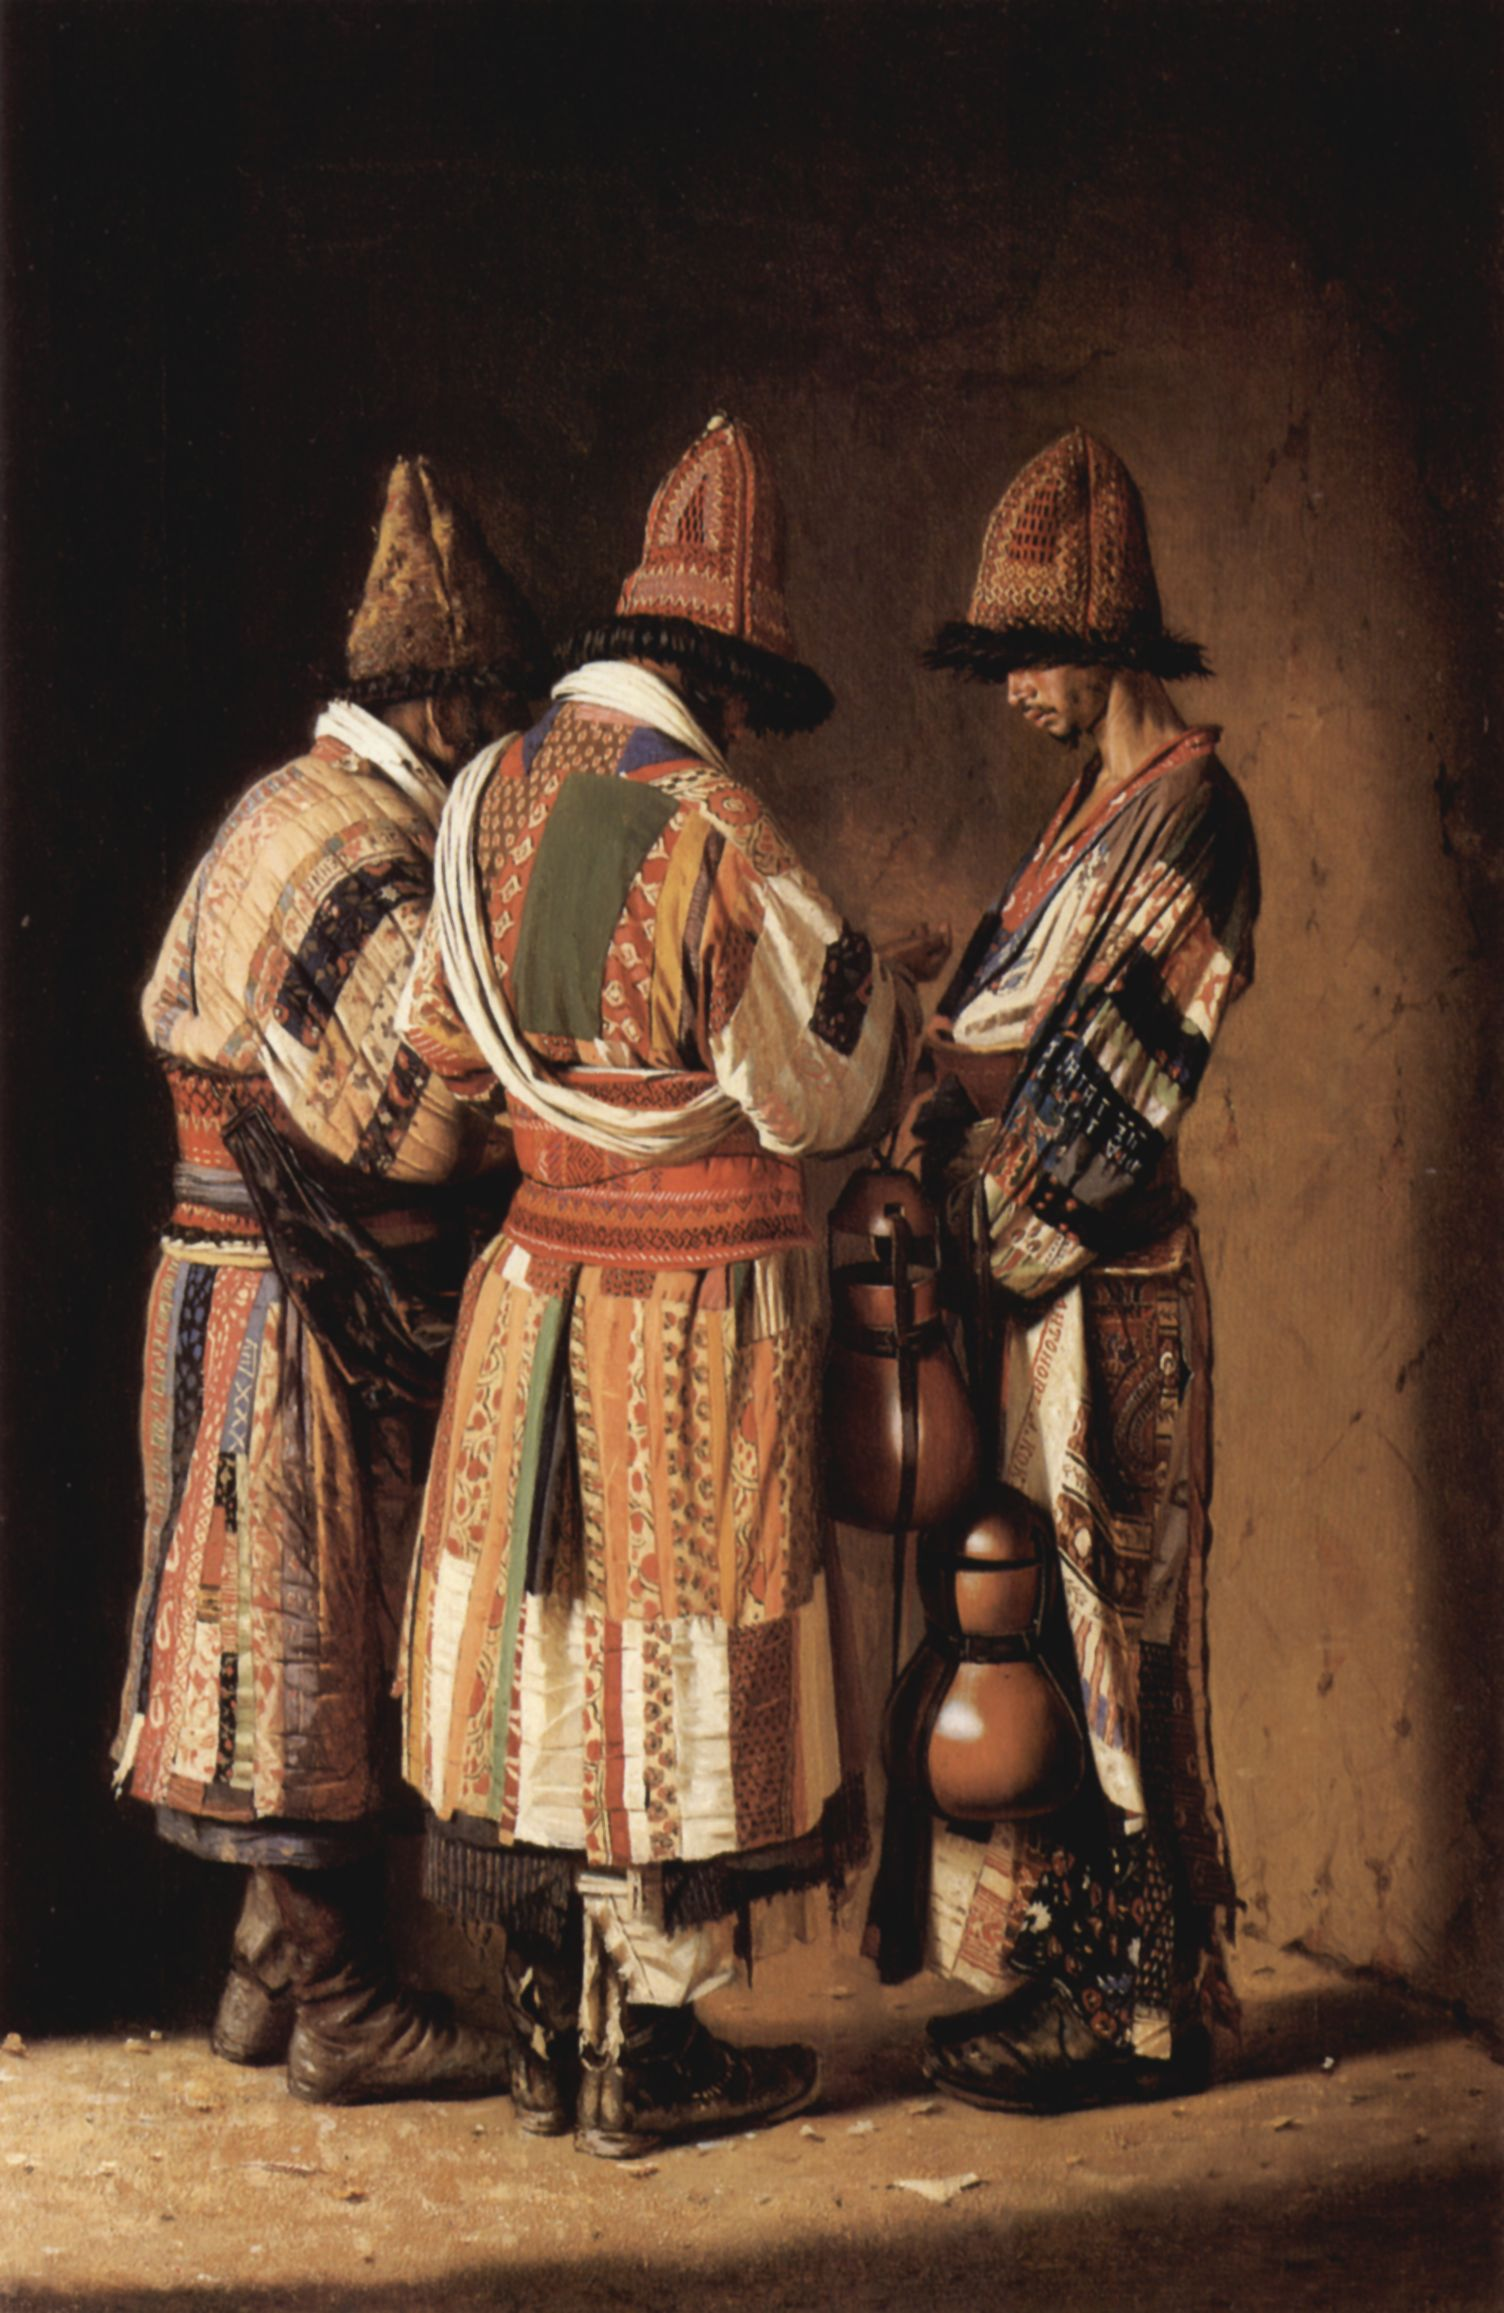 Dervishes wearing festive clothing